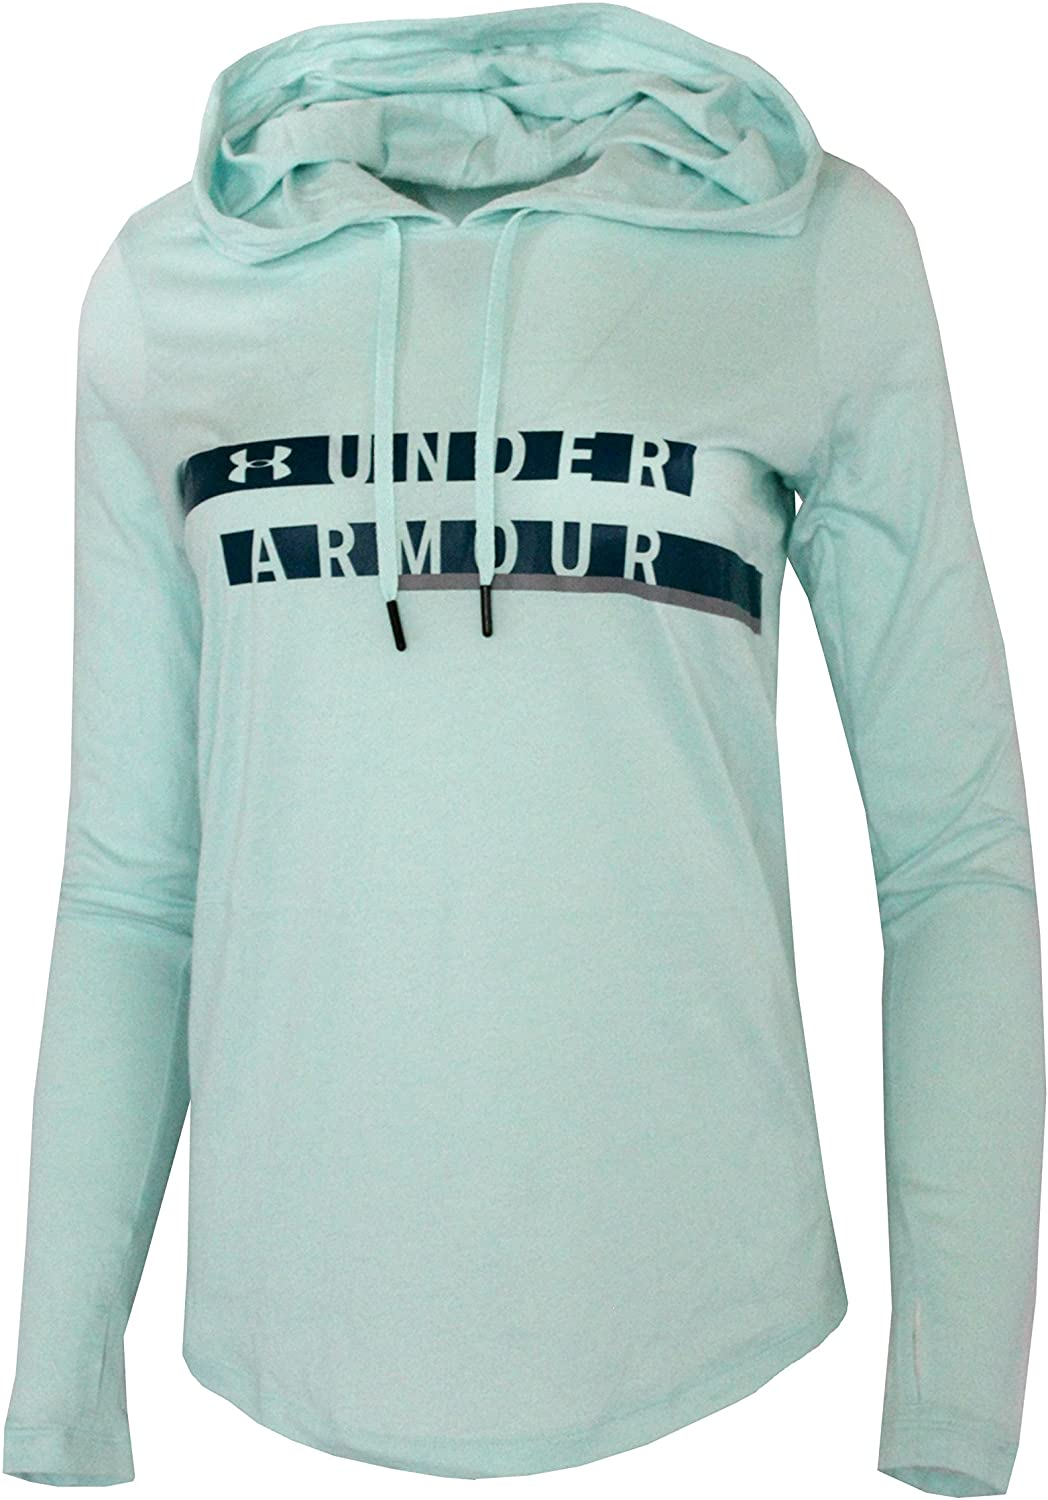 Under Armour Women's Athletic Hooded Light Cotton Blend Long Sleeve Shirt Top Hoodie